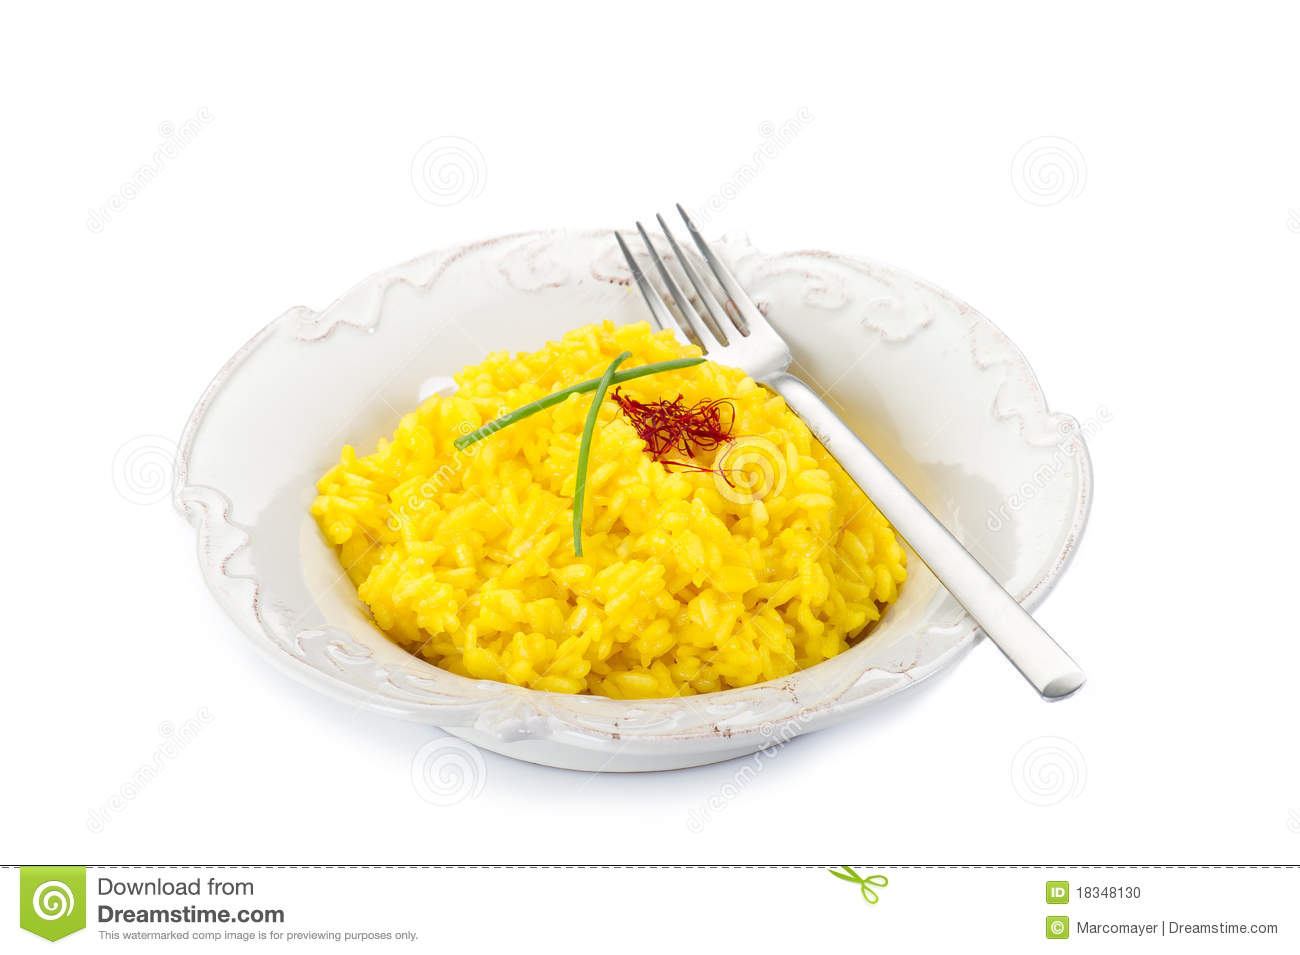 10 199 Saffron Rice Photos Free Royalty Free Stock Photos From Dreamstime